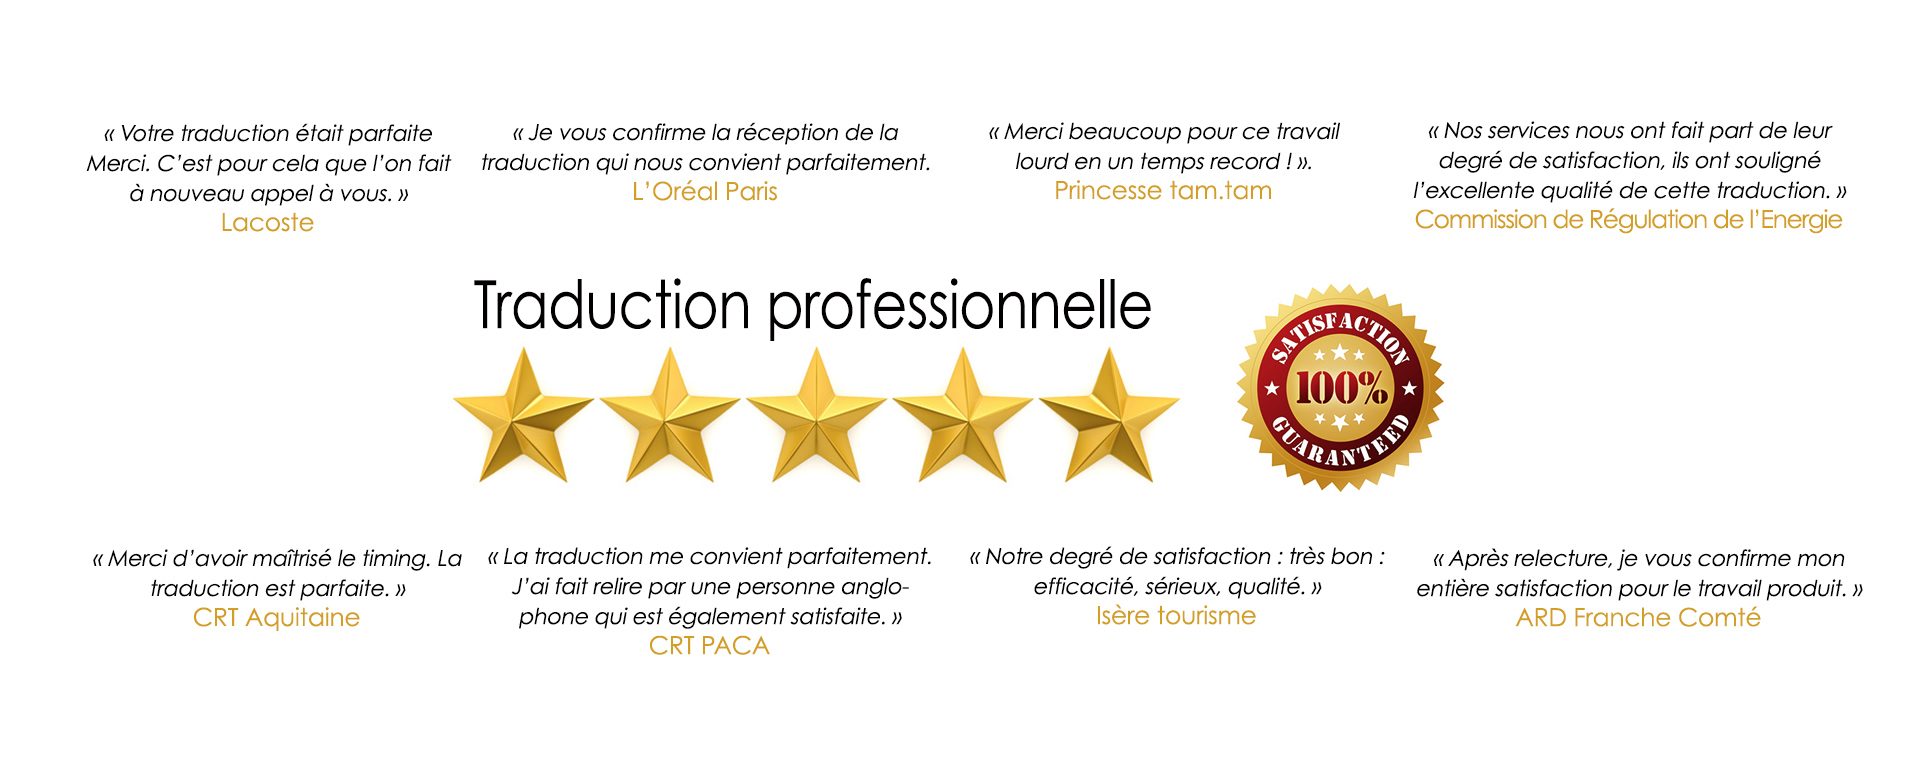 traduction professionnelle